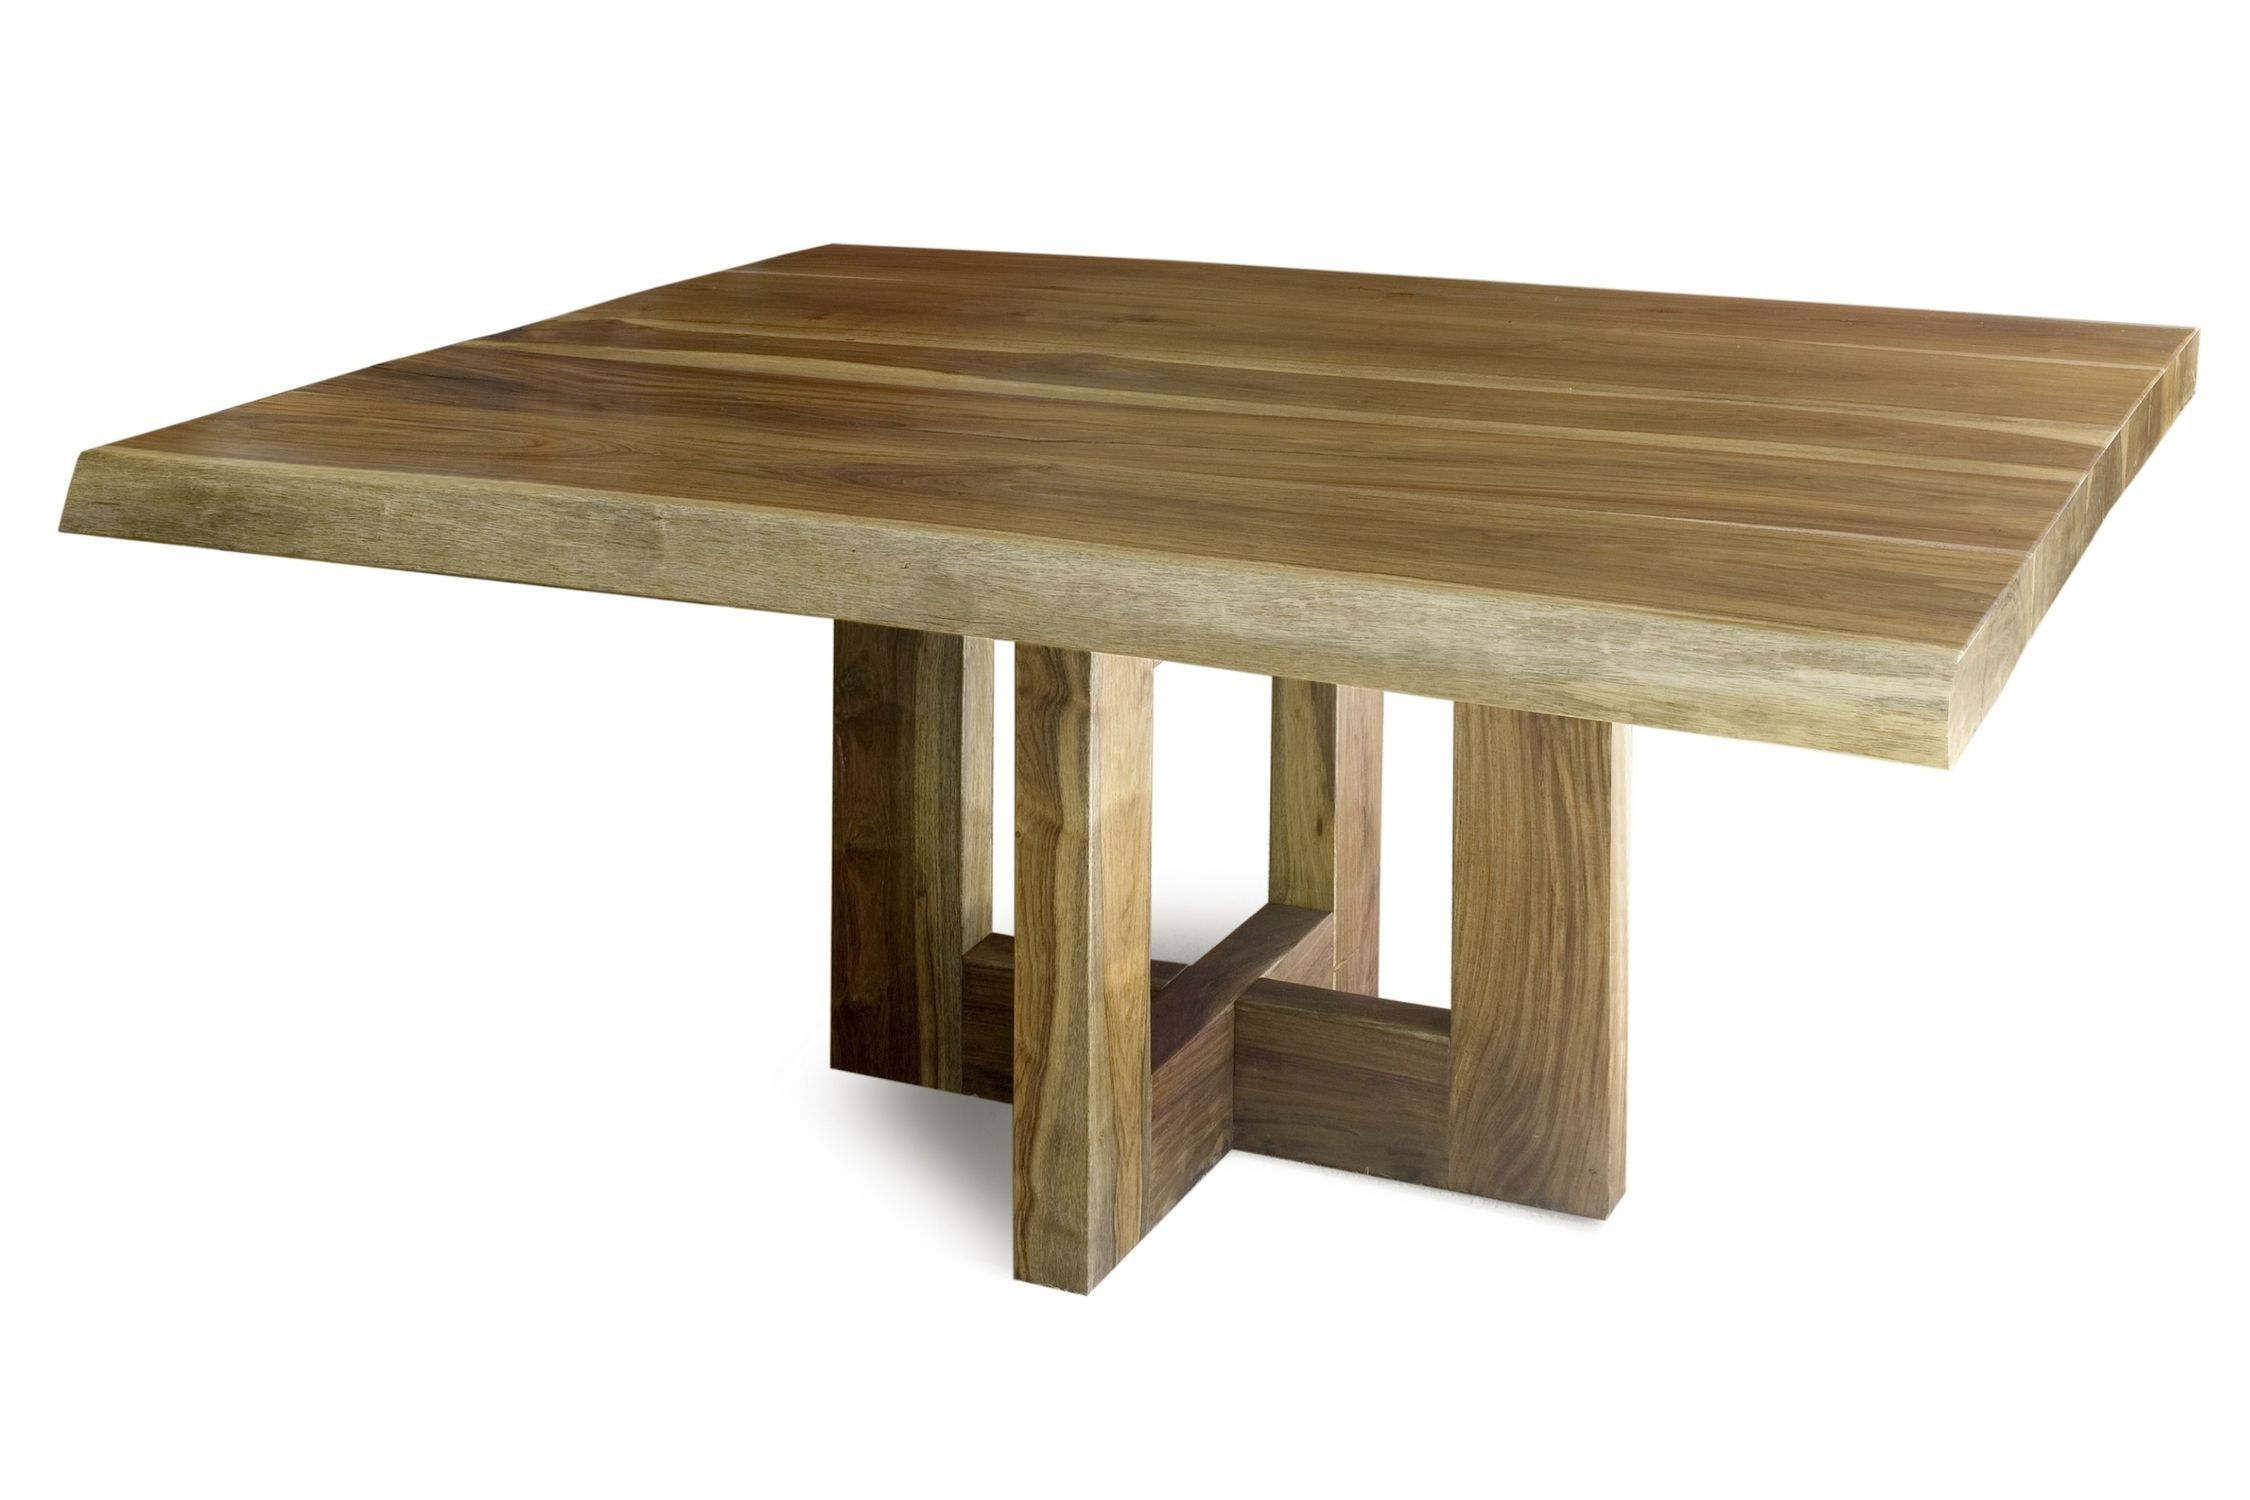 Contemporary rectangle unfinished reclaimed wood table for for Wood dining table decor